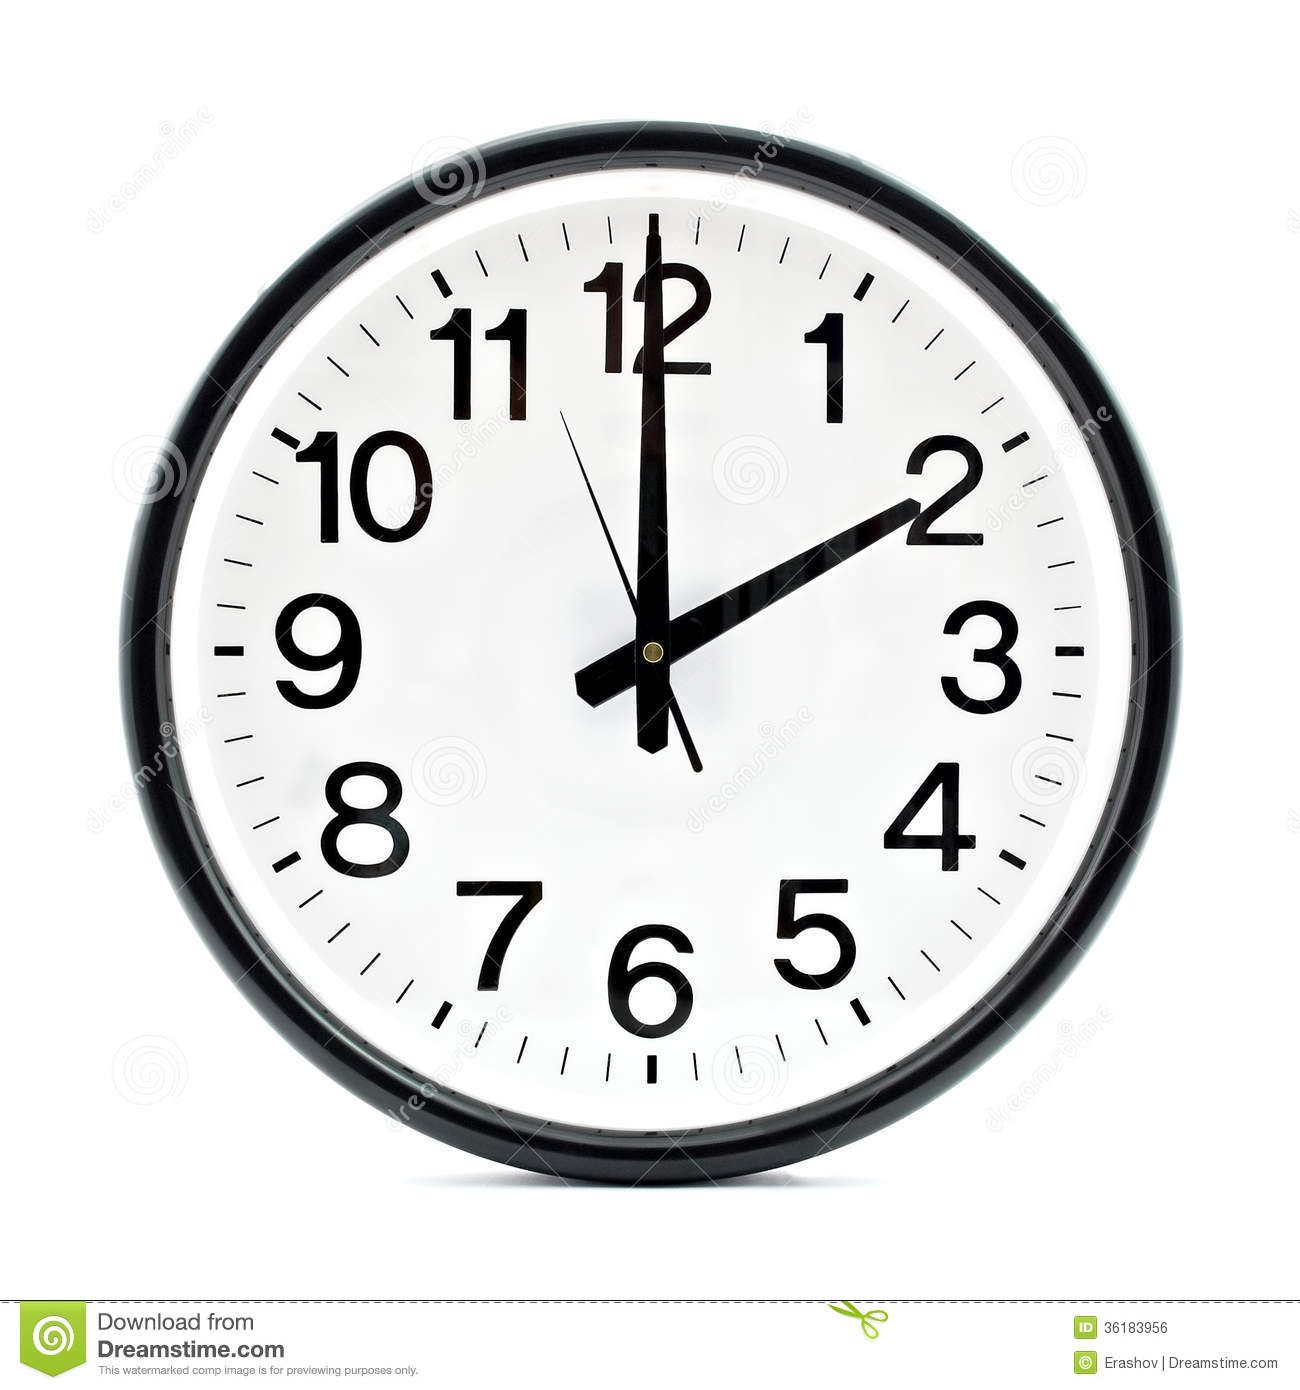 Wall Clock Clipart Black And White Wall Clock Clipart Wall Clock